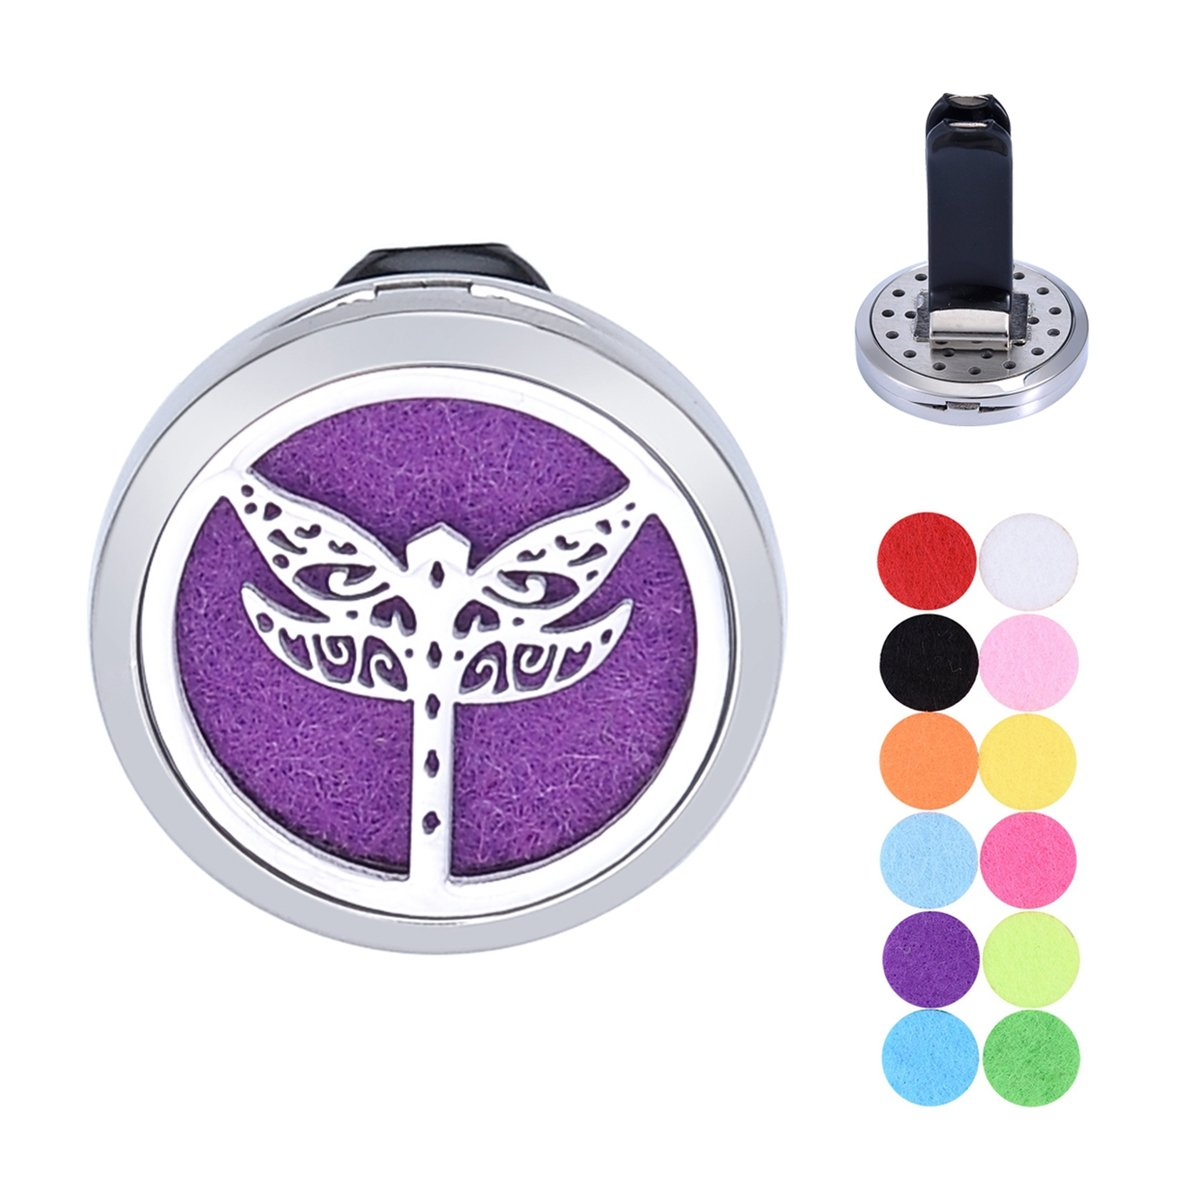 Car Aromatherapy Essential Oil Diffuser Stainless Steel Cat Vine Locket Air Freshener with Vent Clip 12 Felt Pads (Cat) Supreme glory SGto-B299405